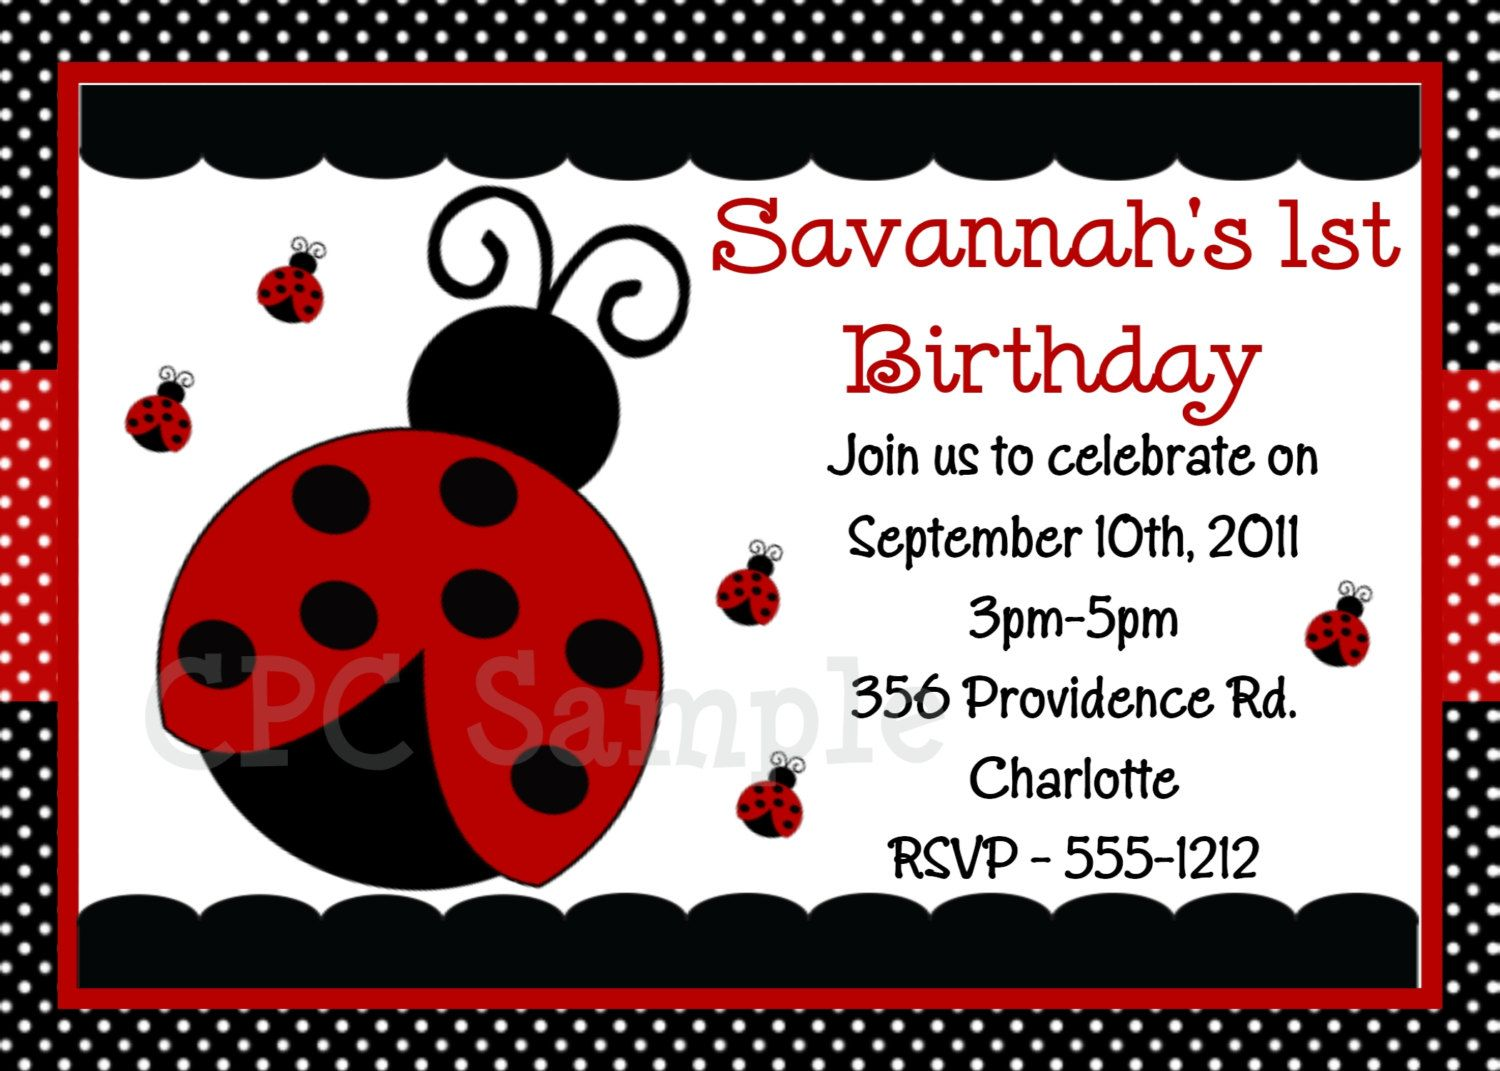 Ladybug birthday invitation ladybug birthday party invitation ladybug birthday invitation ladybug birthday party invitation printable ladybug invitations 1500 via etsy filmwisefo Choice Image